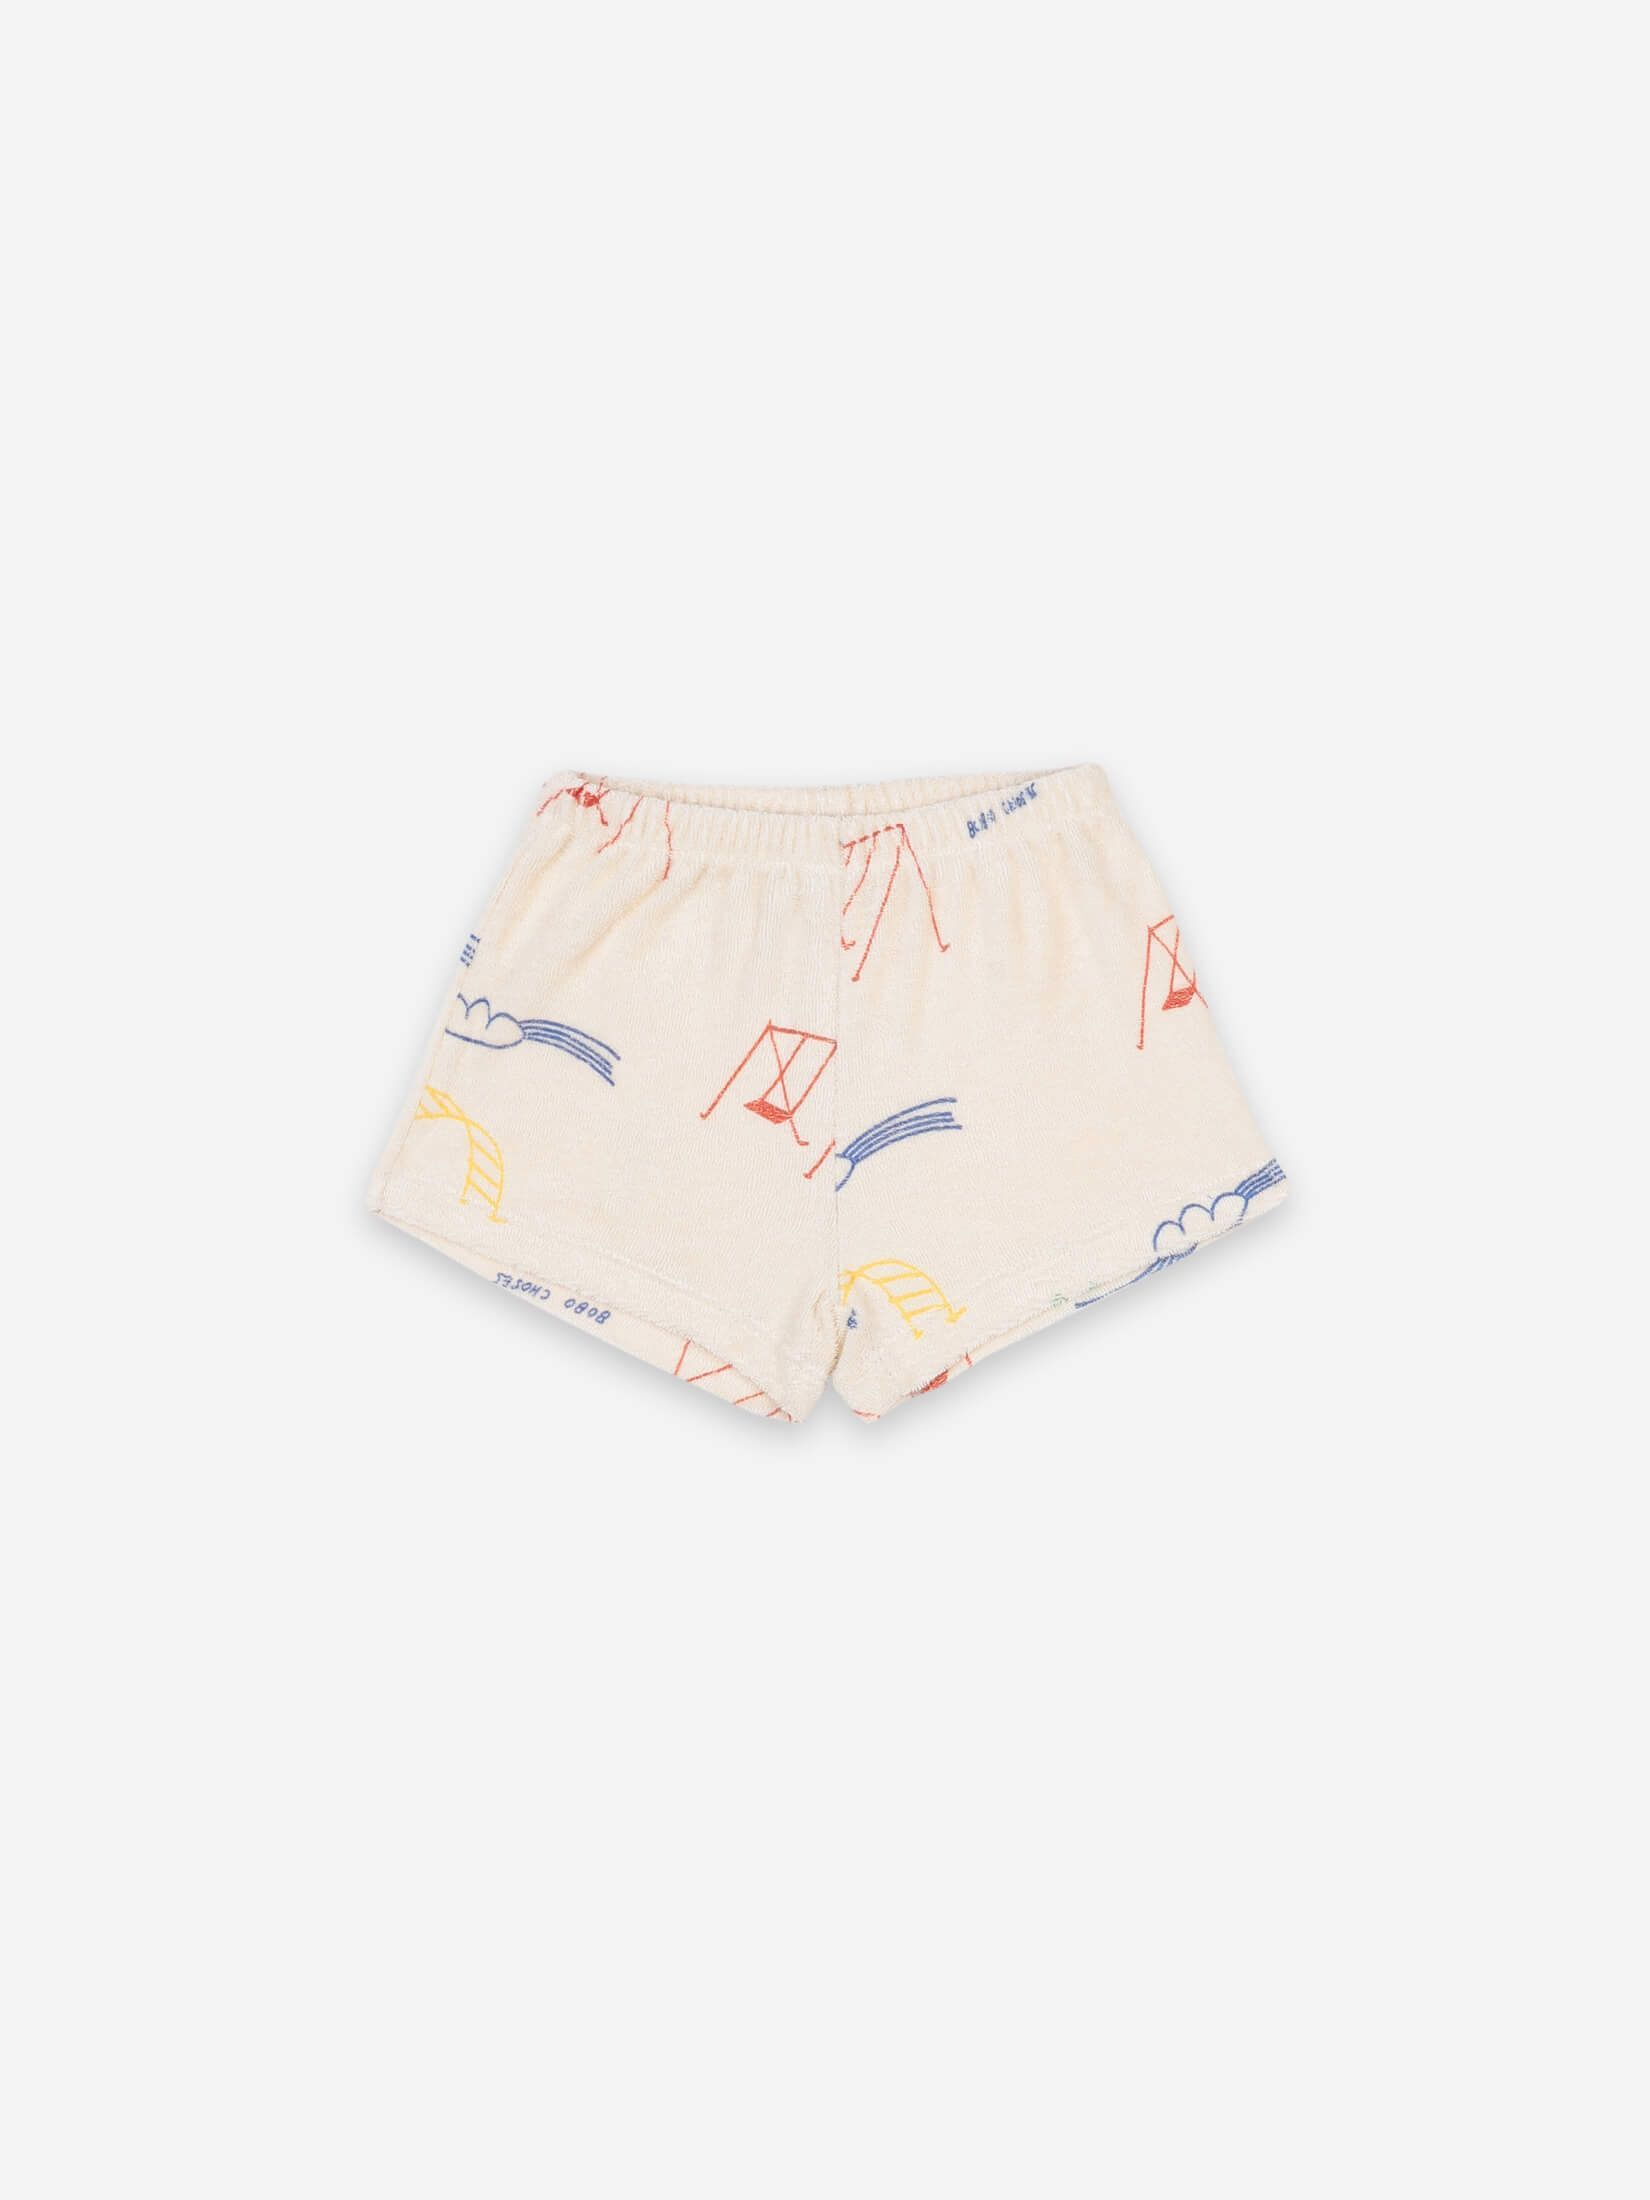 BOBO CHOSES ボボショセス Playground All Over Terry Fleece Shorts size:12-18M(80-90)・18-24M(90-95)